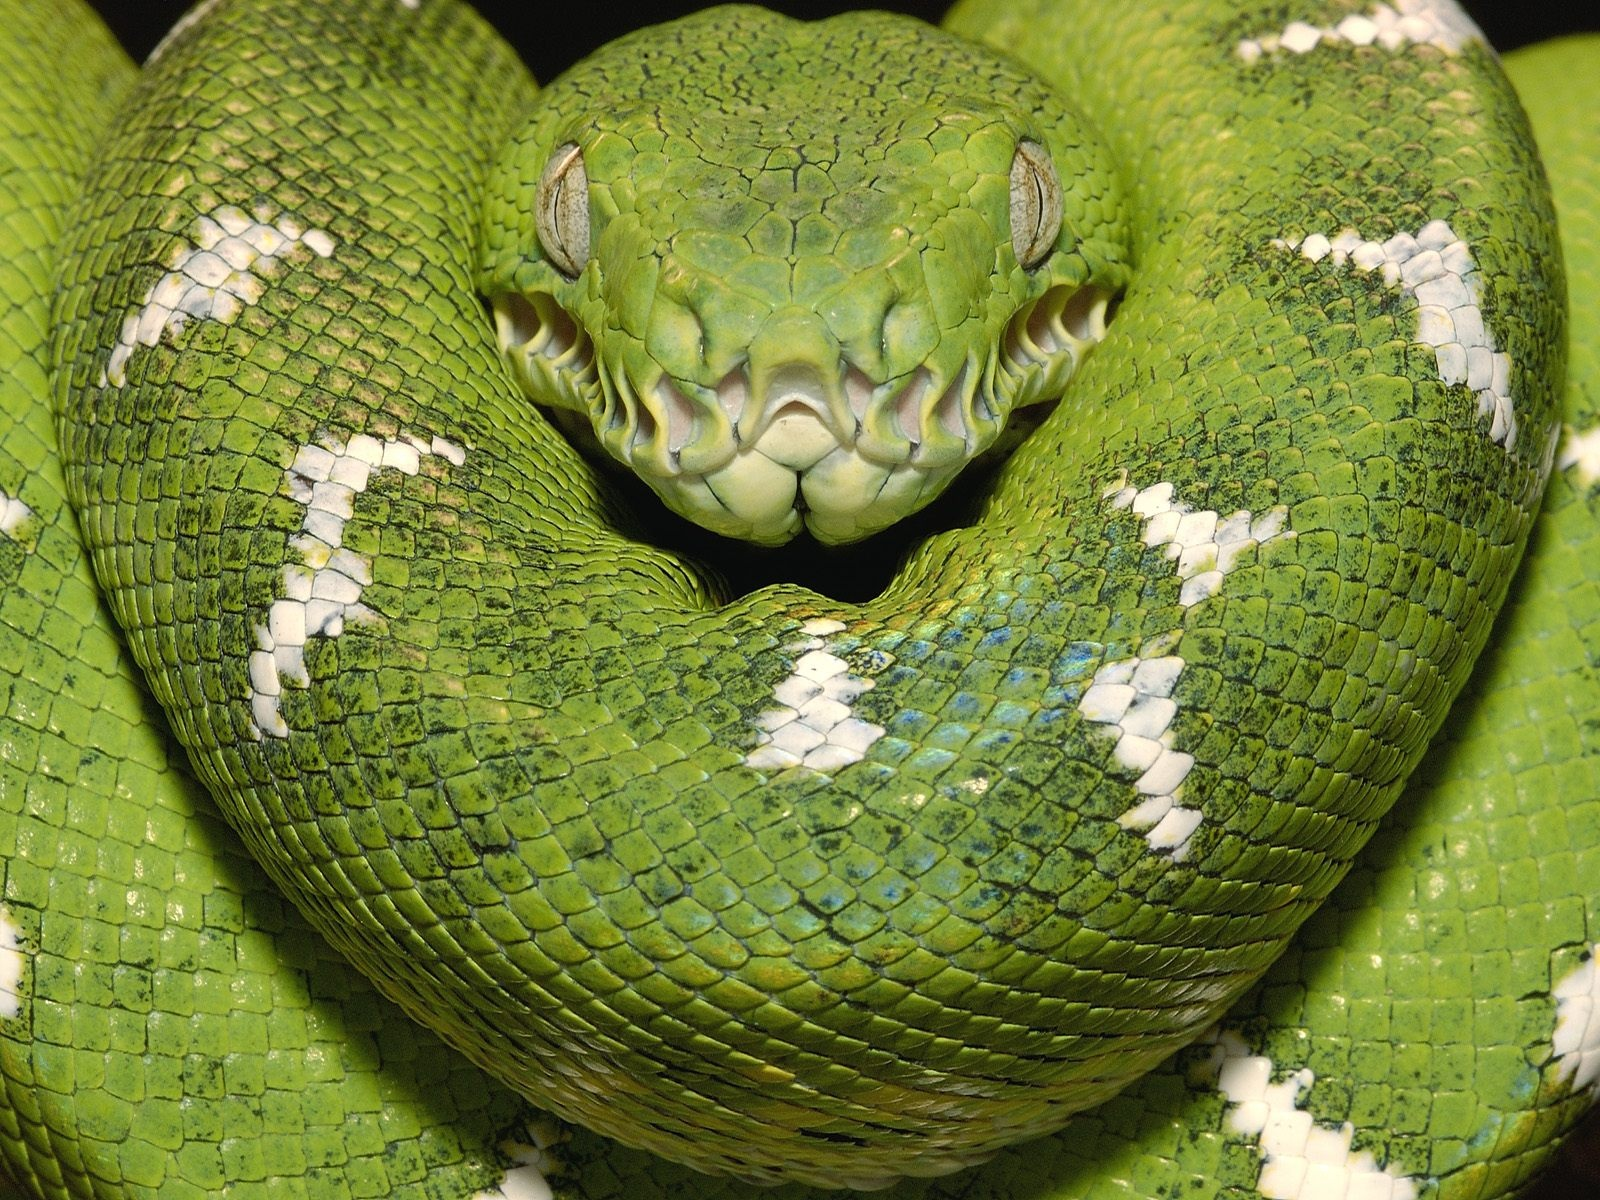 Emerald Tree Boa Amazon Equador Wallpapers in jpg format for free ...